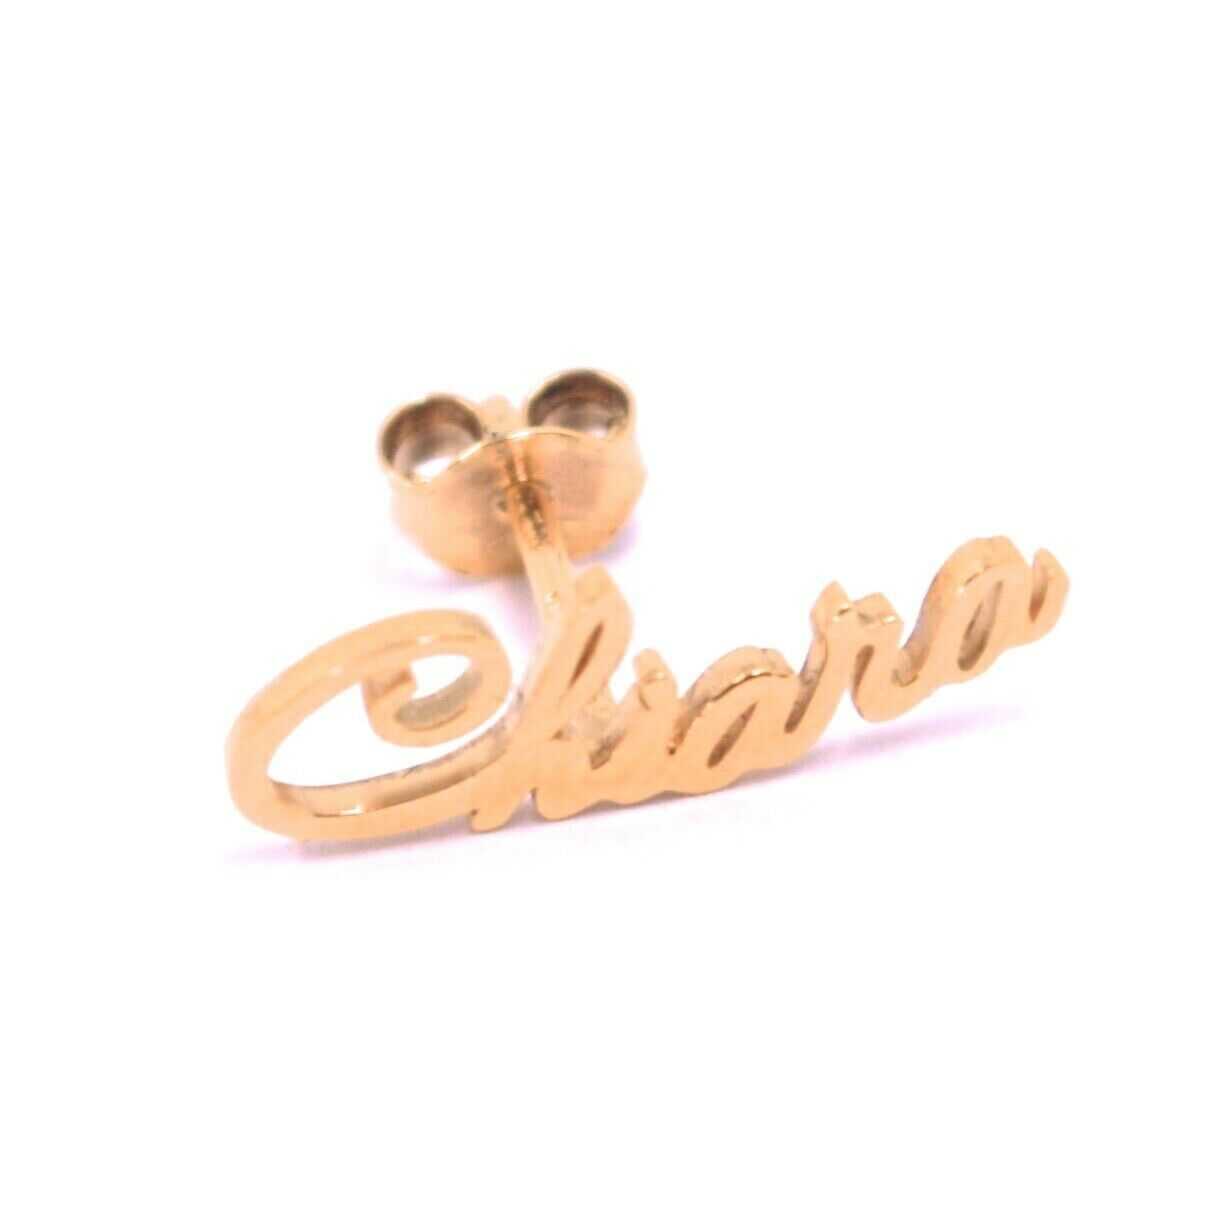 925 STERLING SILVER ROSE EARRINGS, WRITTEN NAME CHIARA, MADE IN ITALY